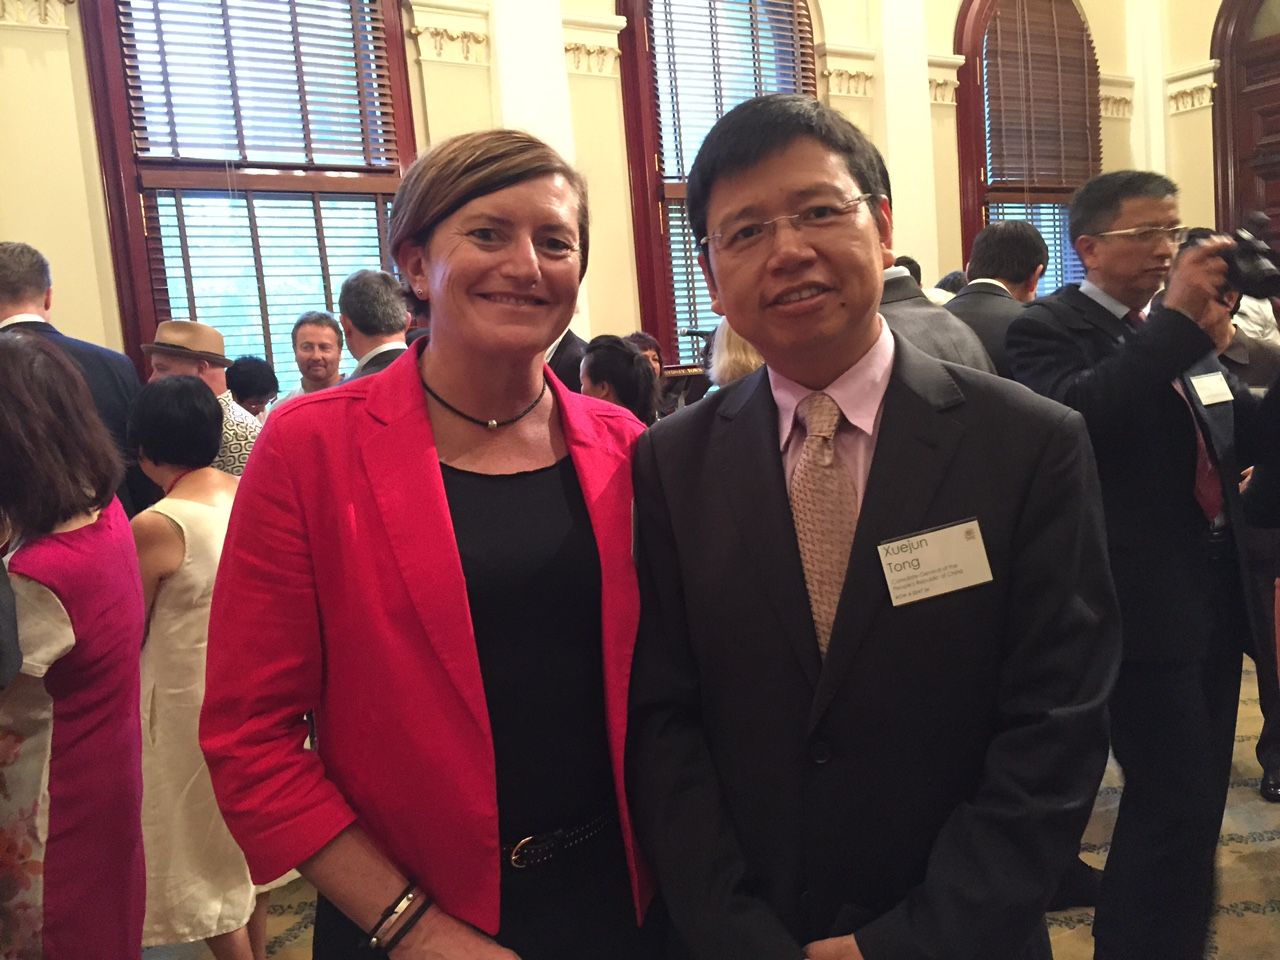 Christine Forster & Xuejun Tong @ CNY Reception 22-02-15